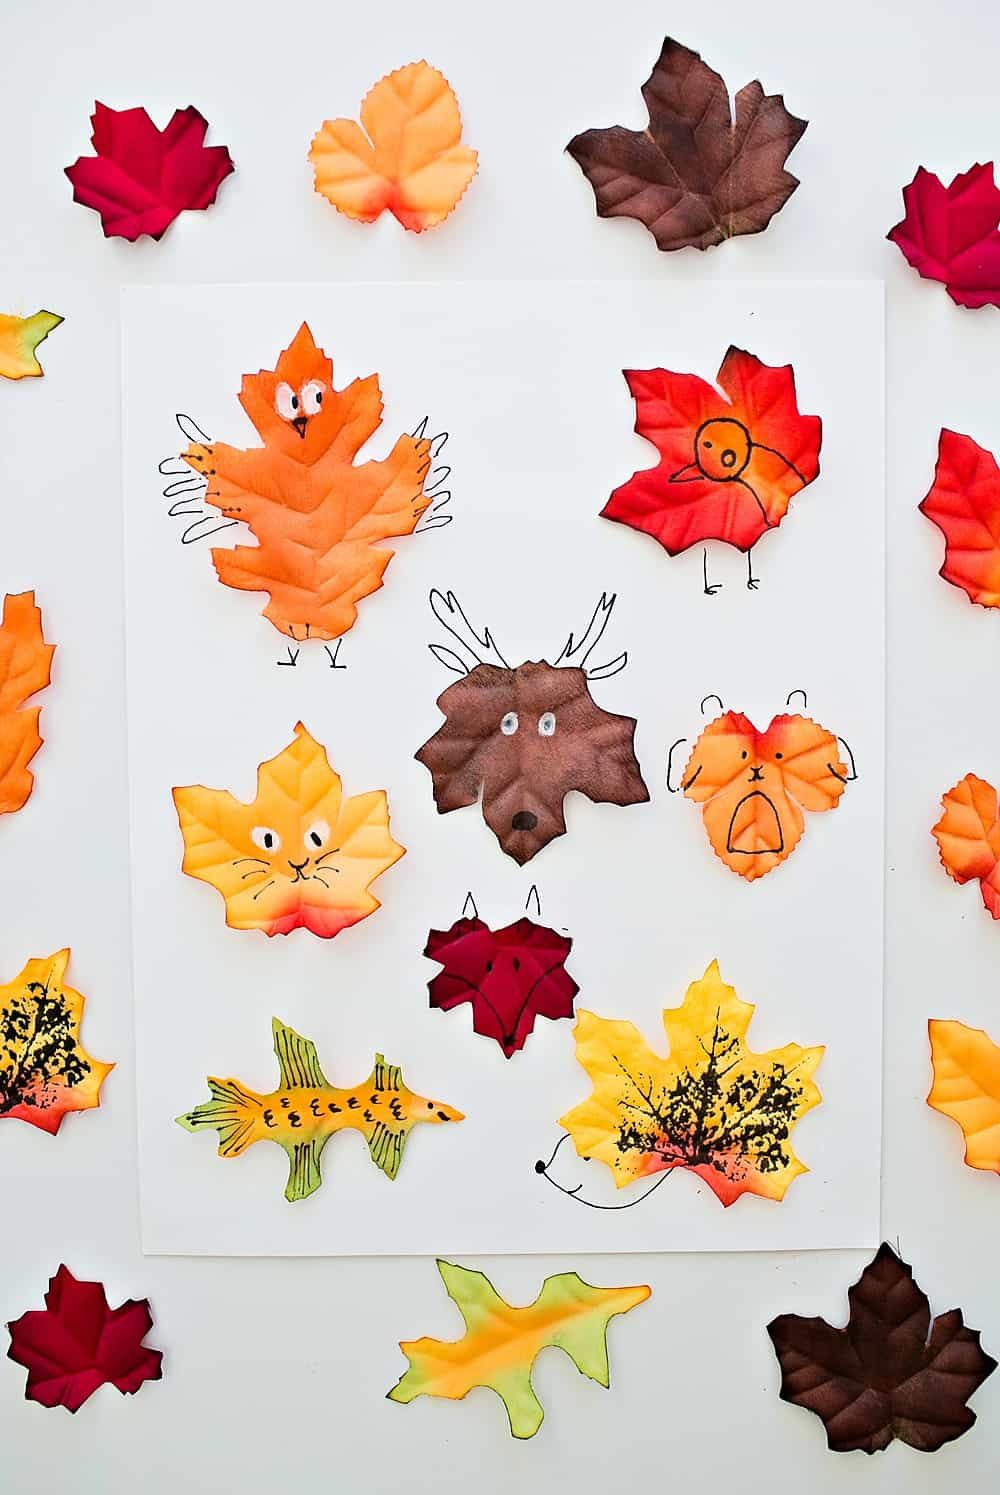 Use the free printable leaf template as a guide for kids to create their  own adorable Leaf Animal Art!